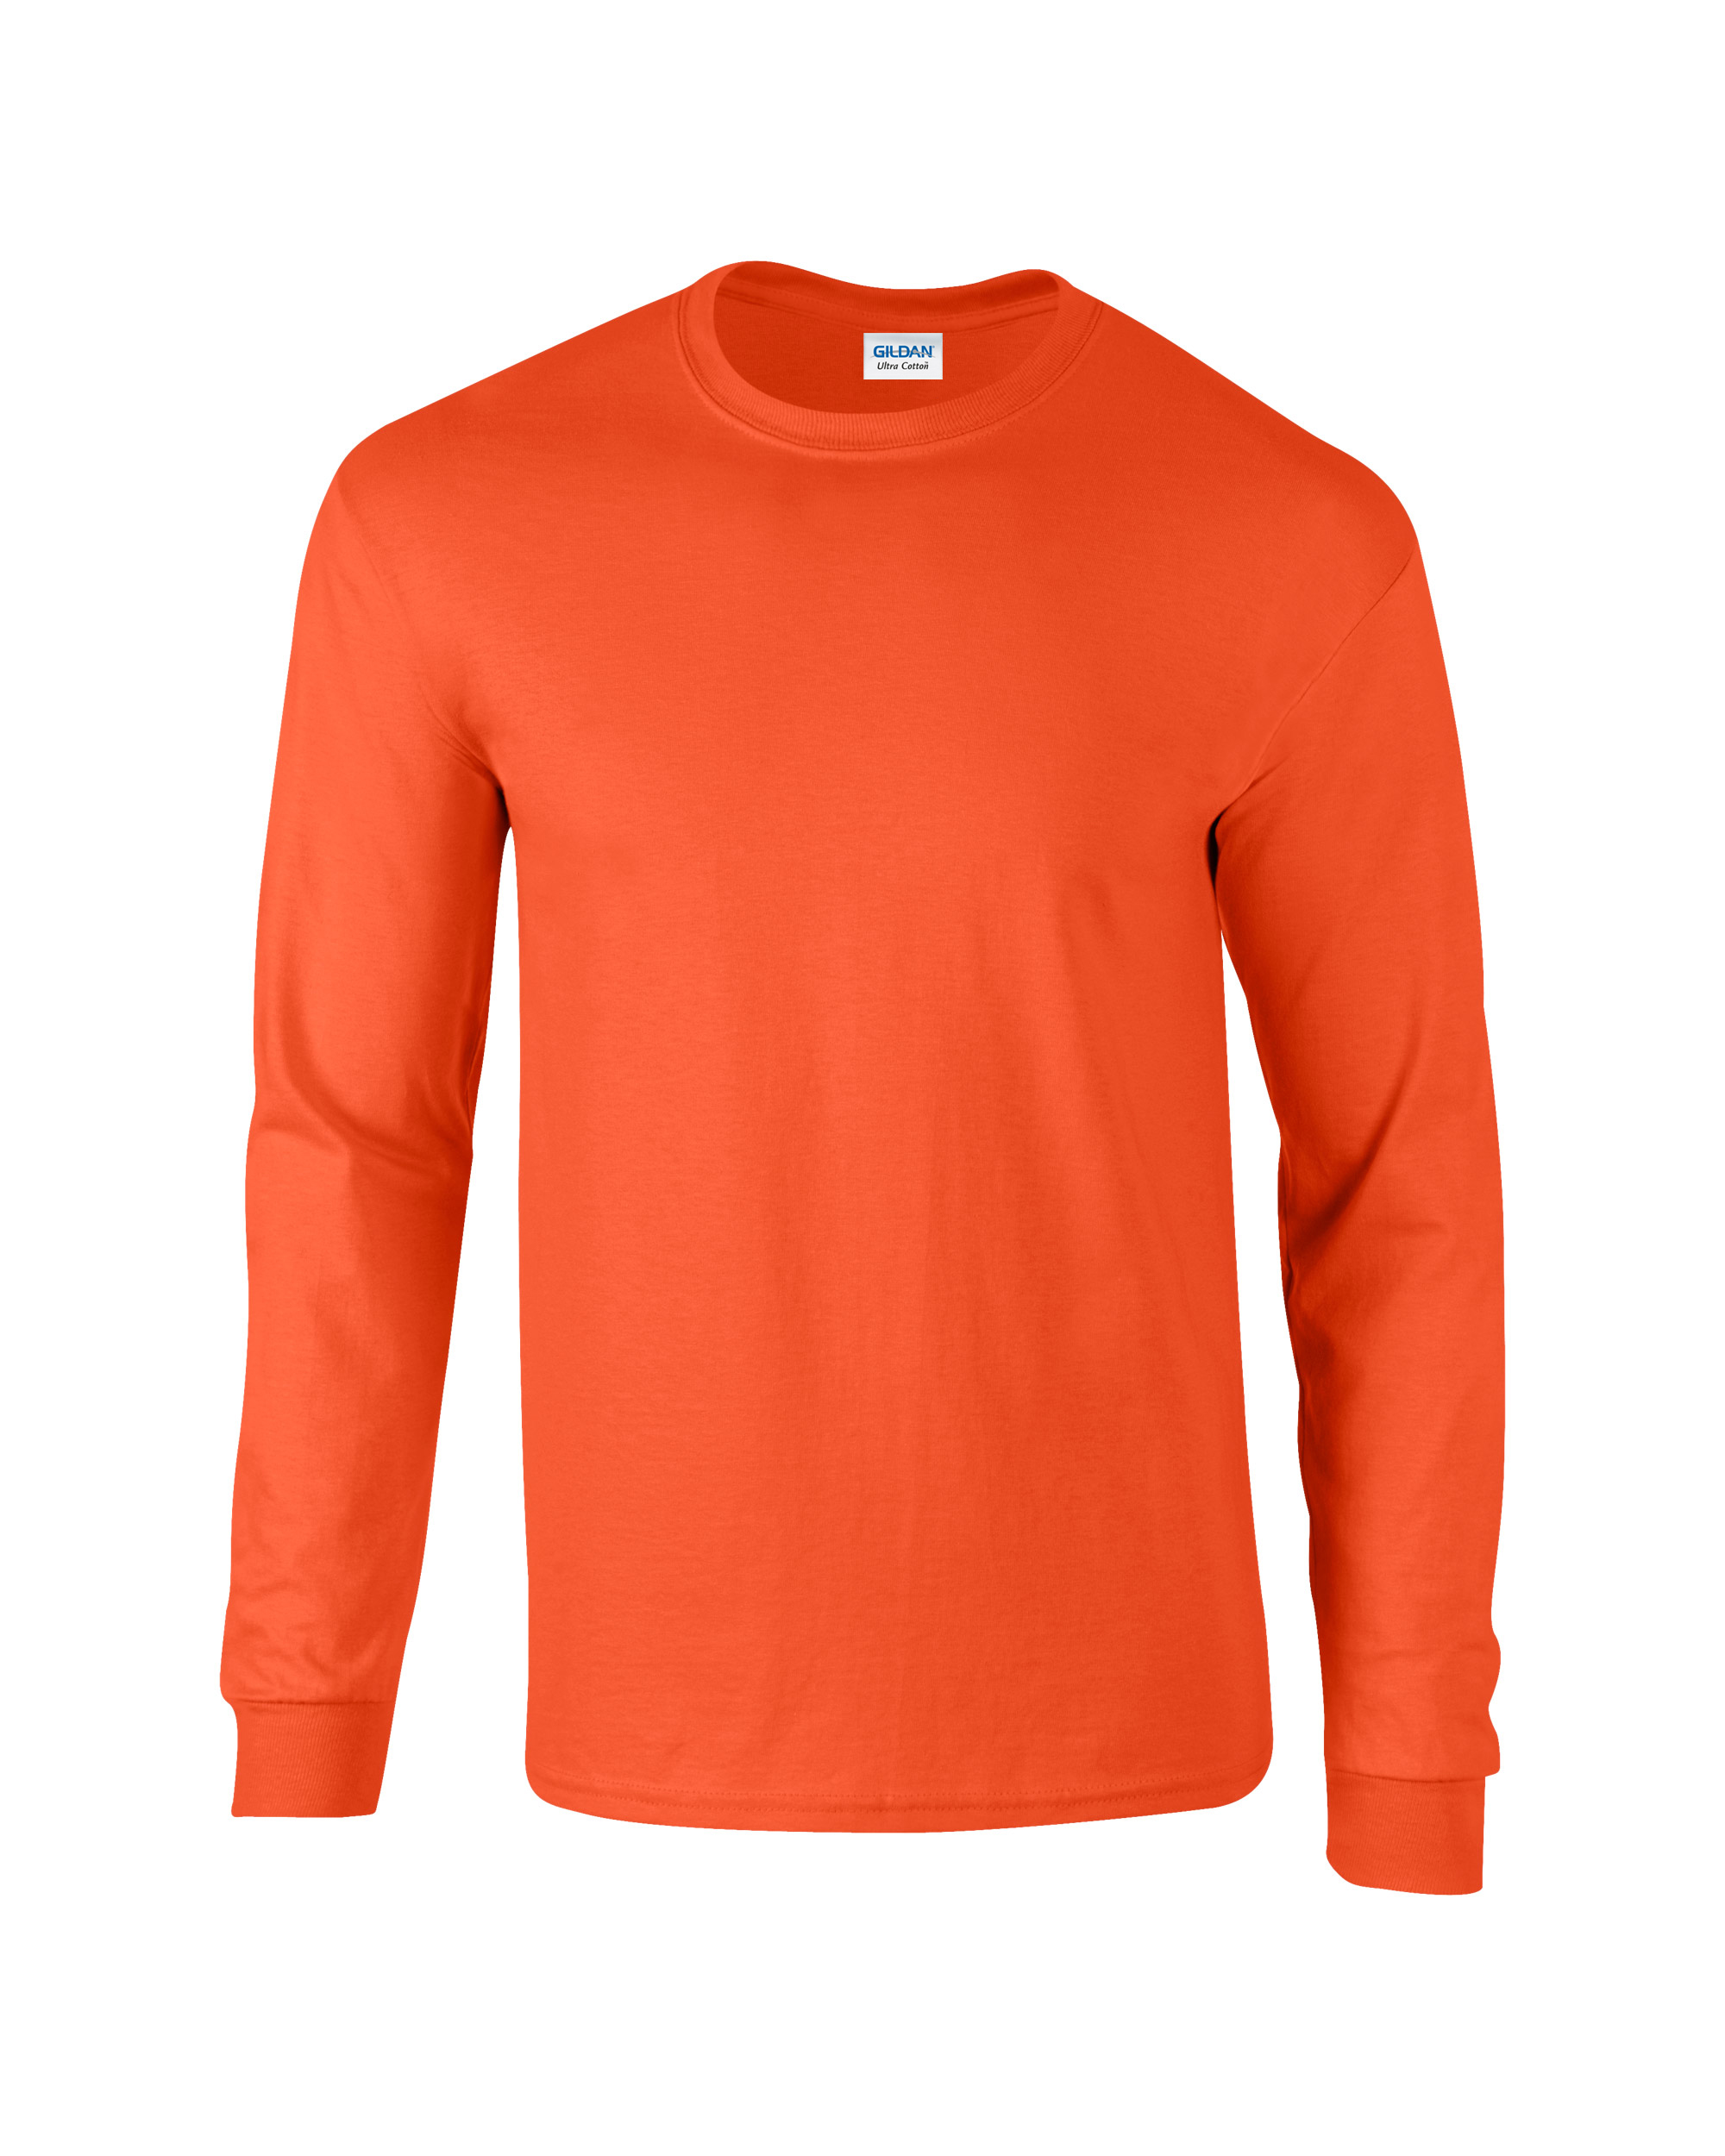 Mens Straight Hem Long Sleeve Shirts